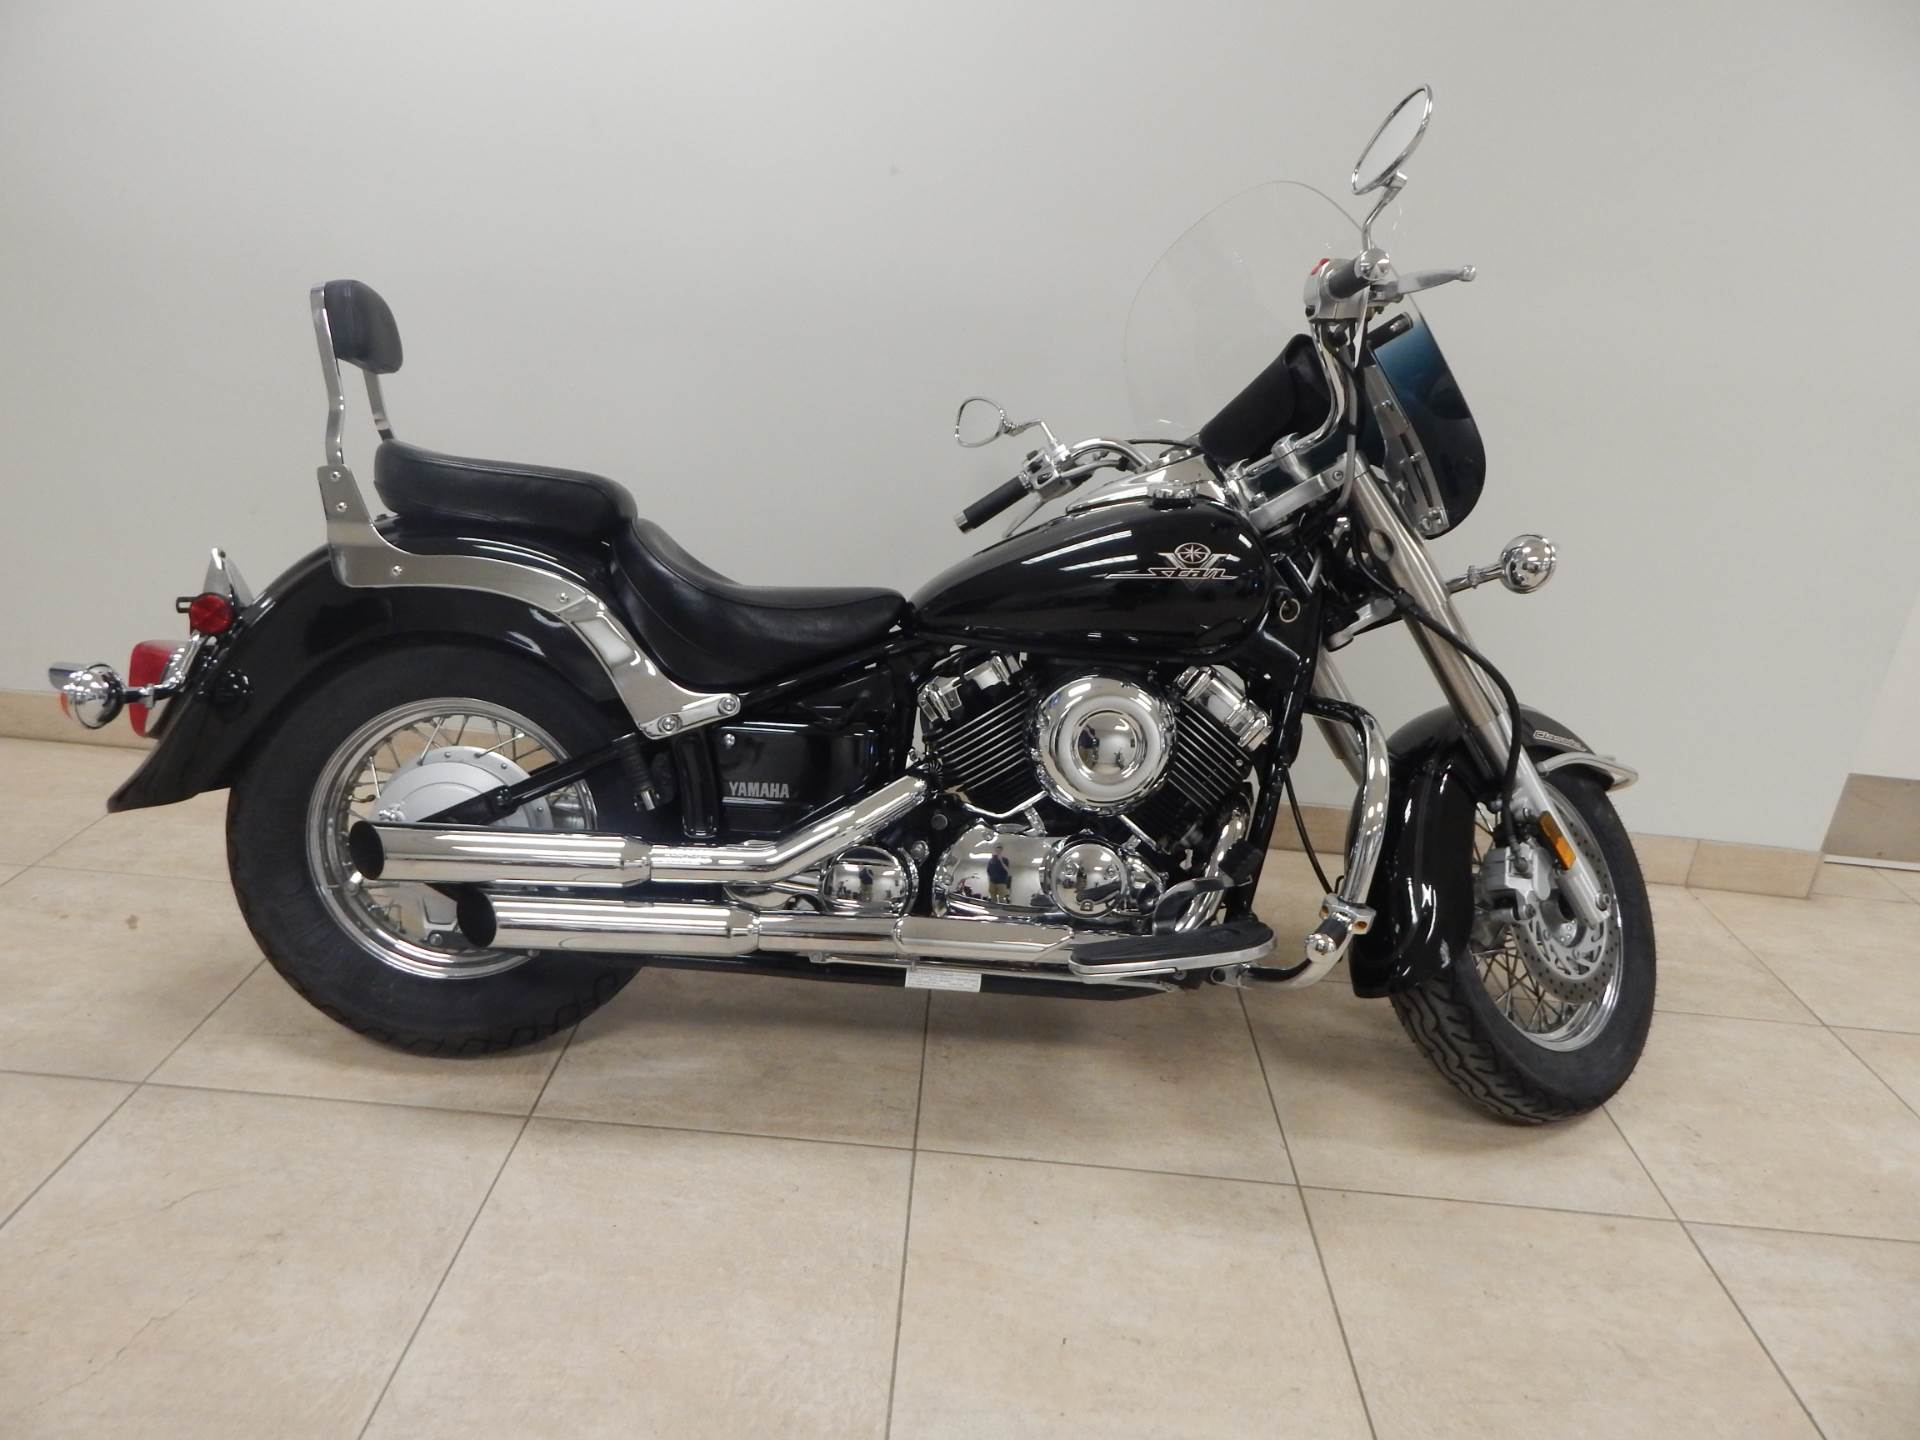 Used 2003 yamaha v star classic motorcycles in concord nh for Yamaha installment financing